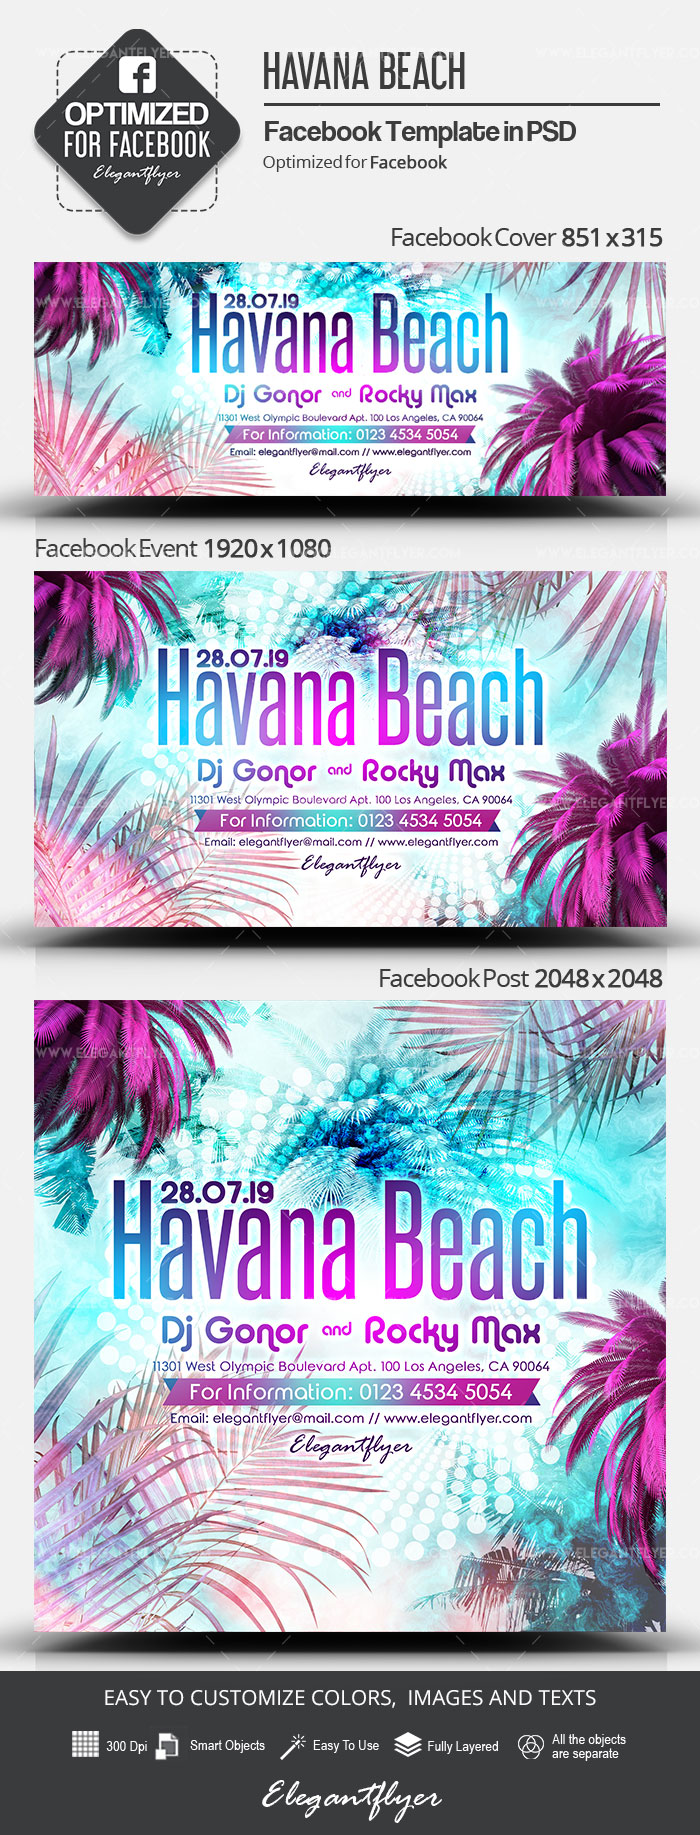 Havana Beach – Facebook Cover Template in PSD + Post + Event cover